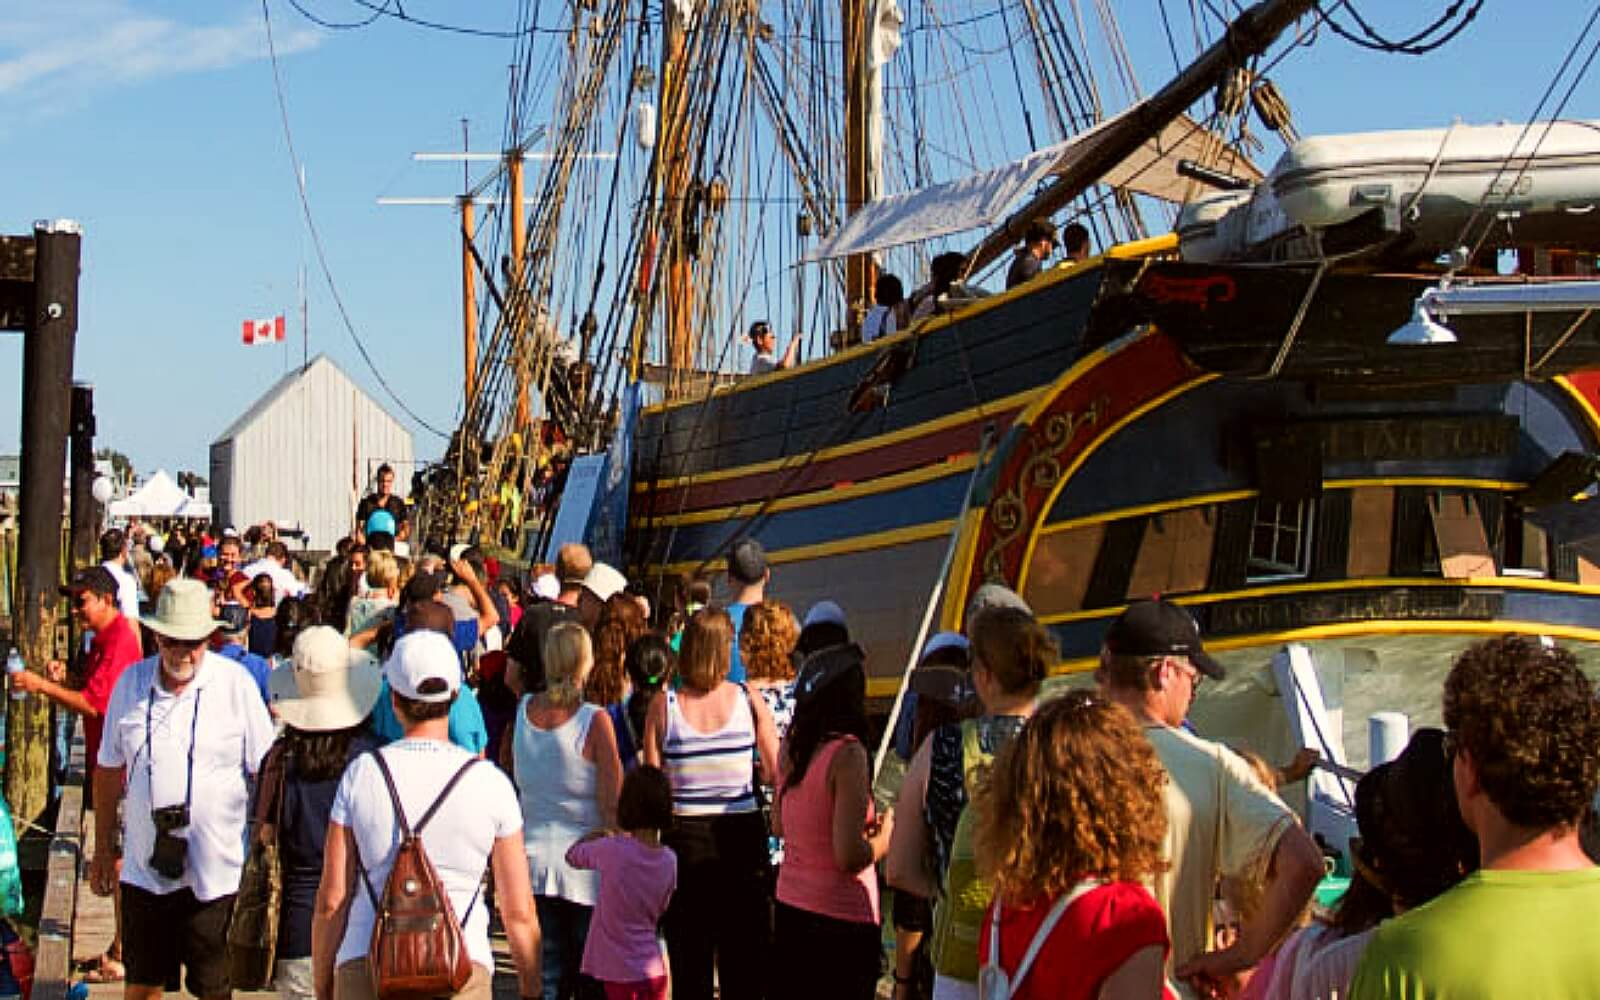 A crowd boards a tallship at the Richmond Maritime Festival